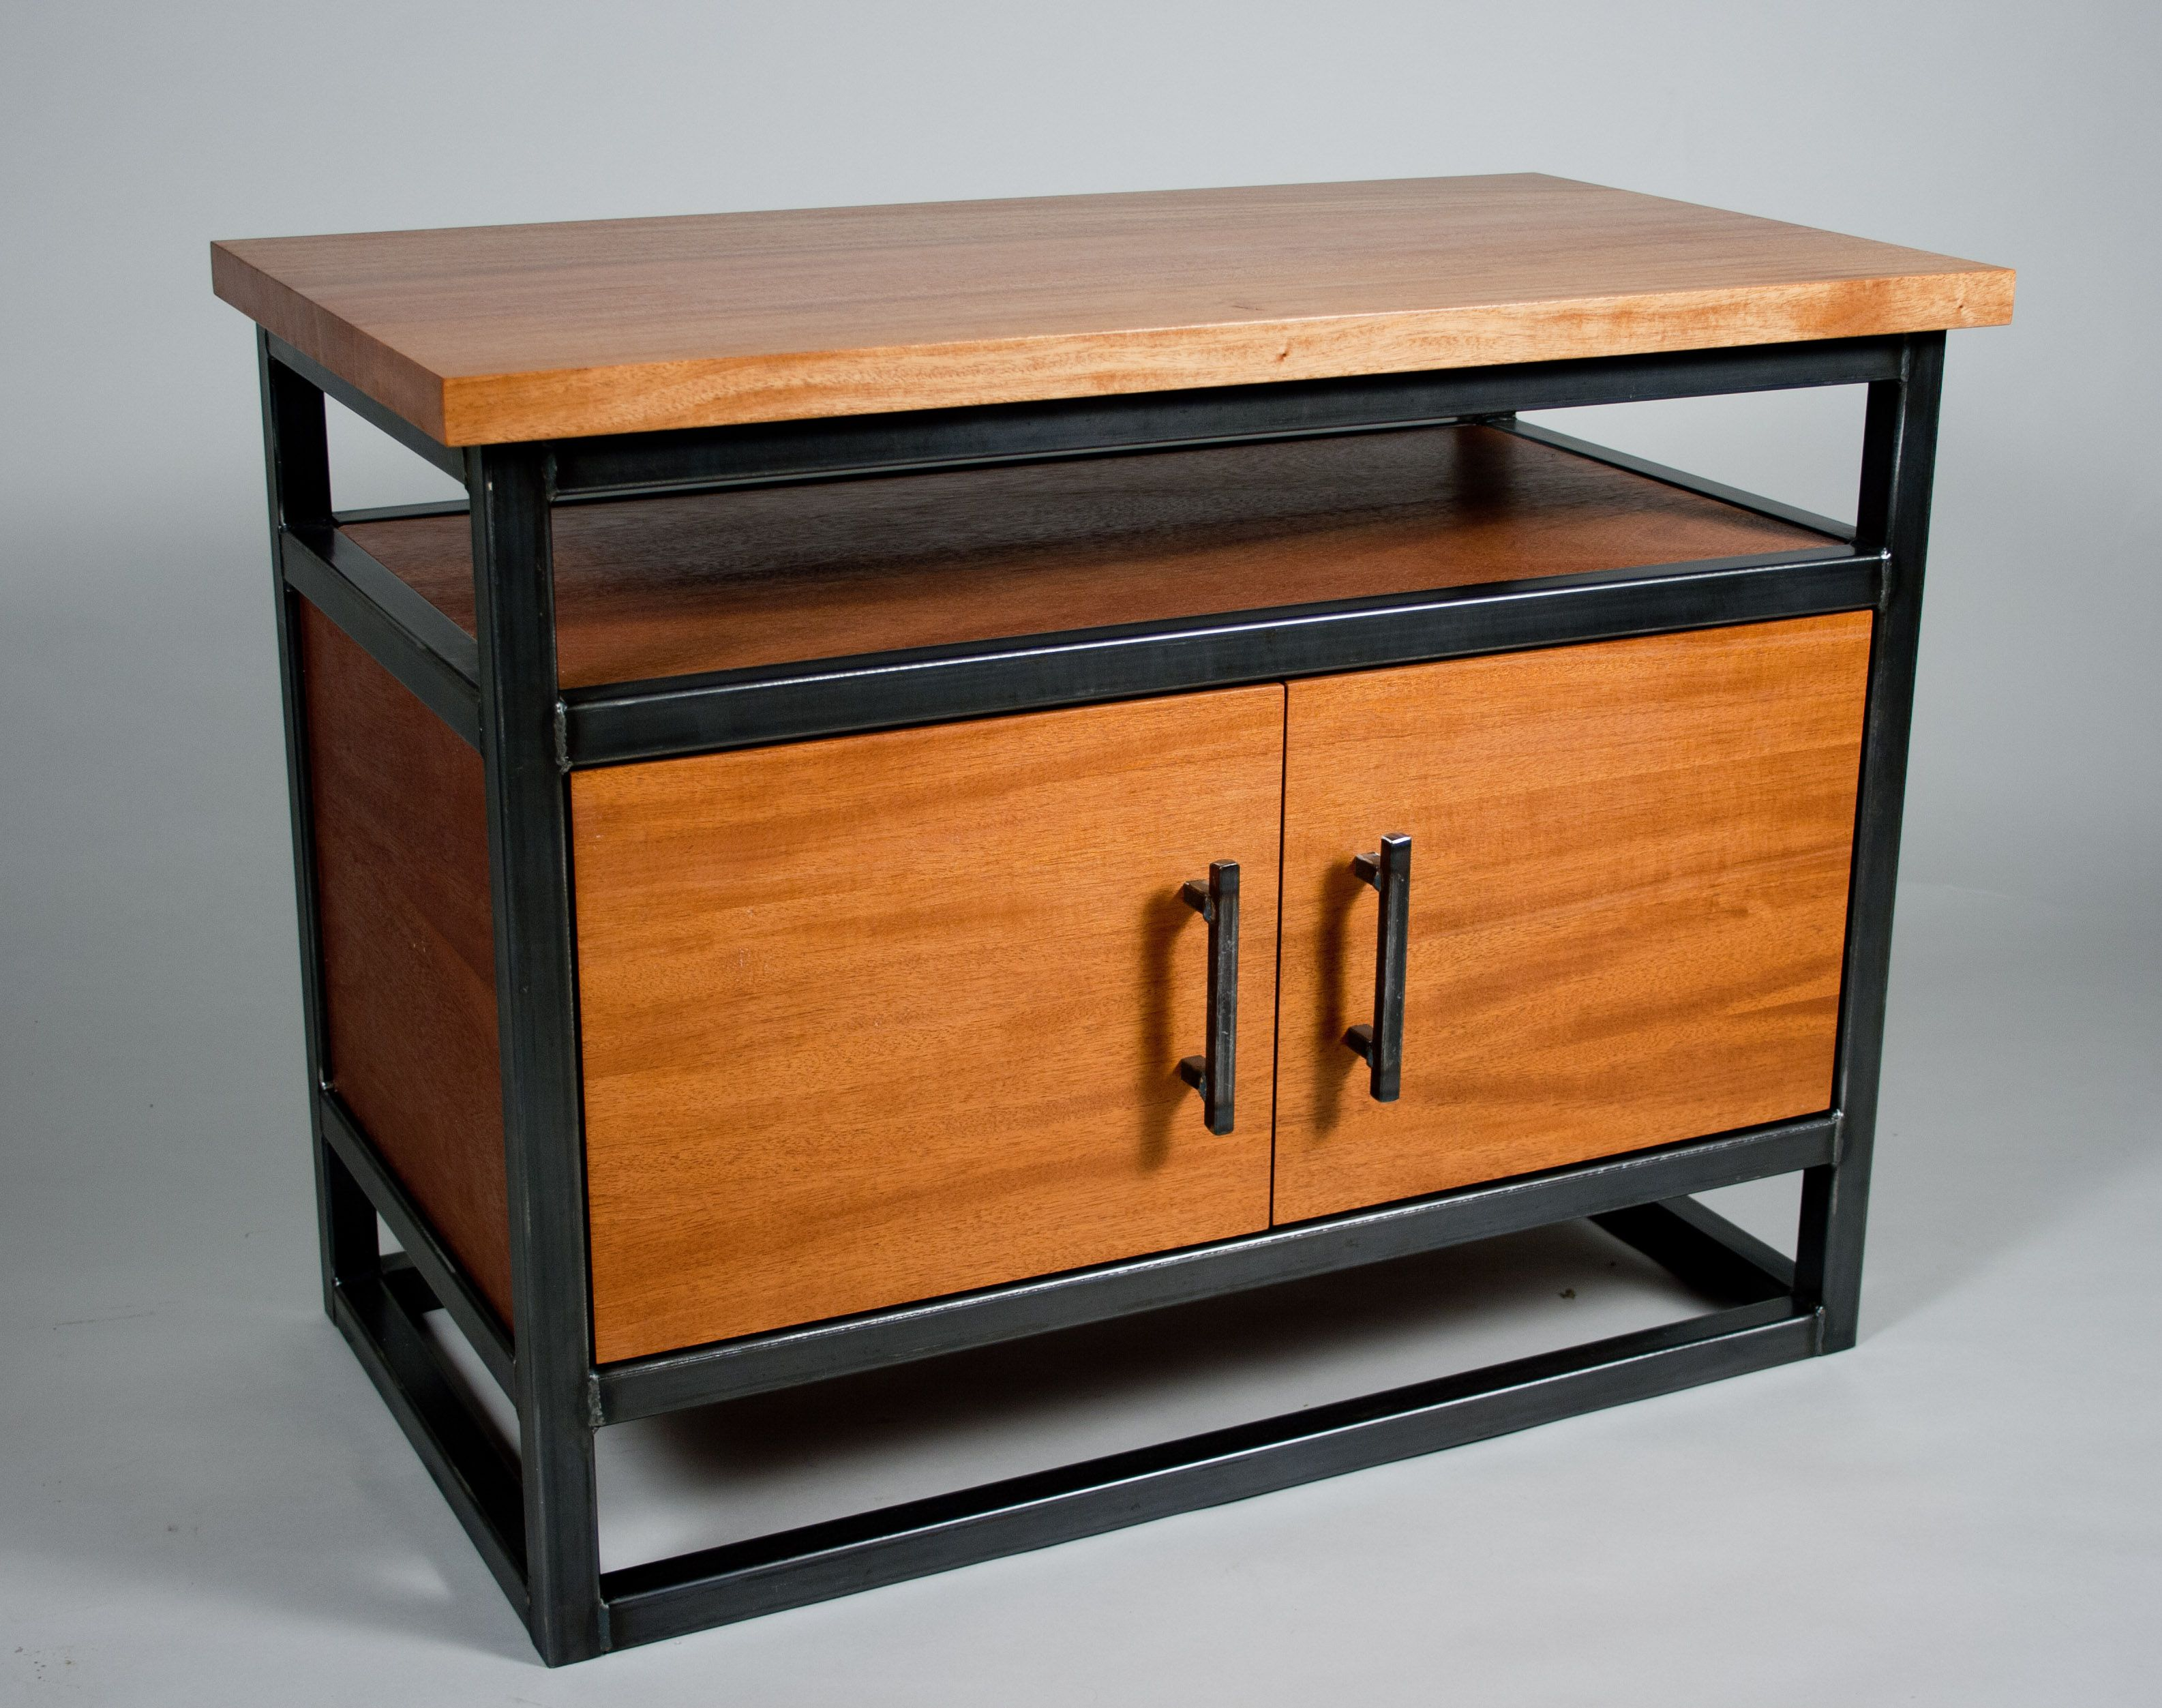 Wood Metal Furniture Decor Ideas Steel Designs Trends With And